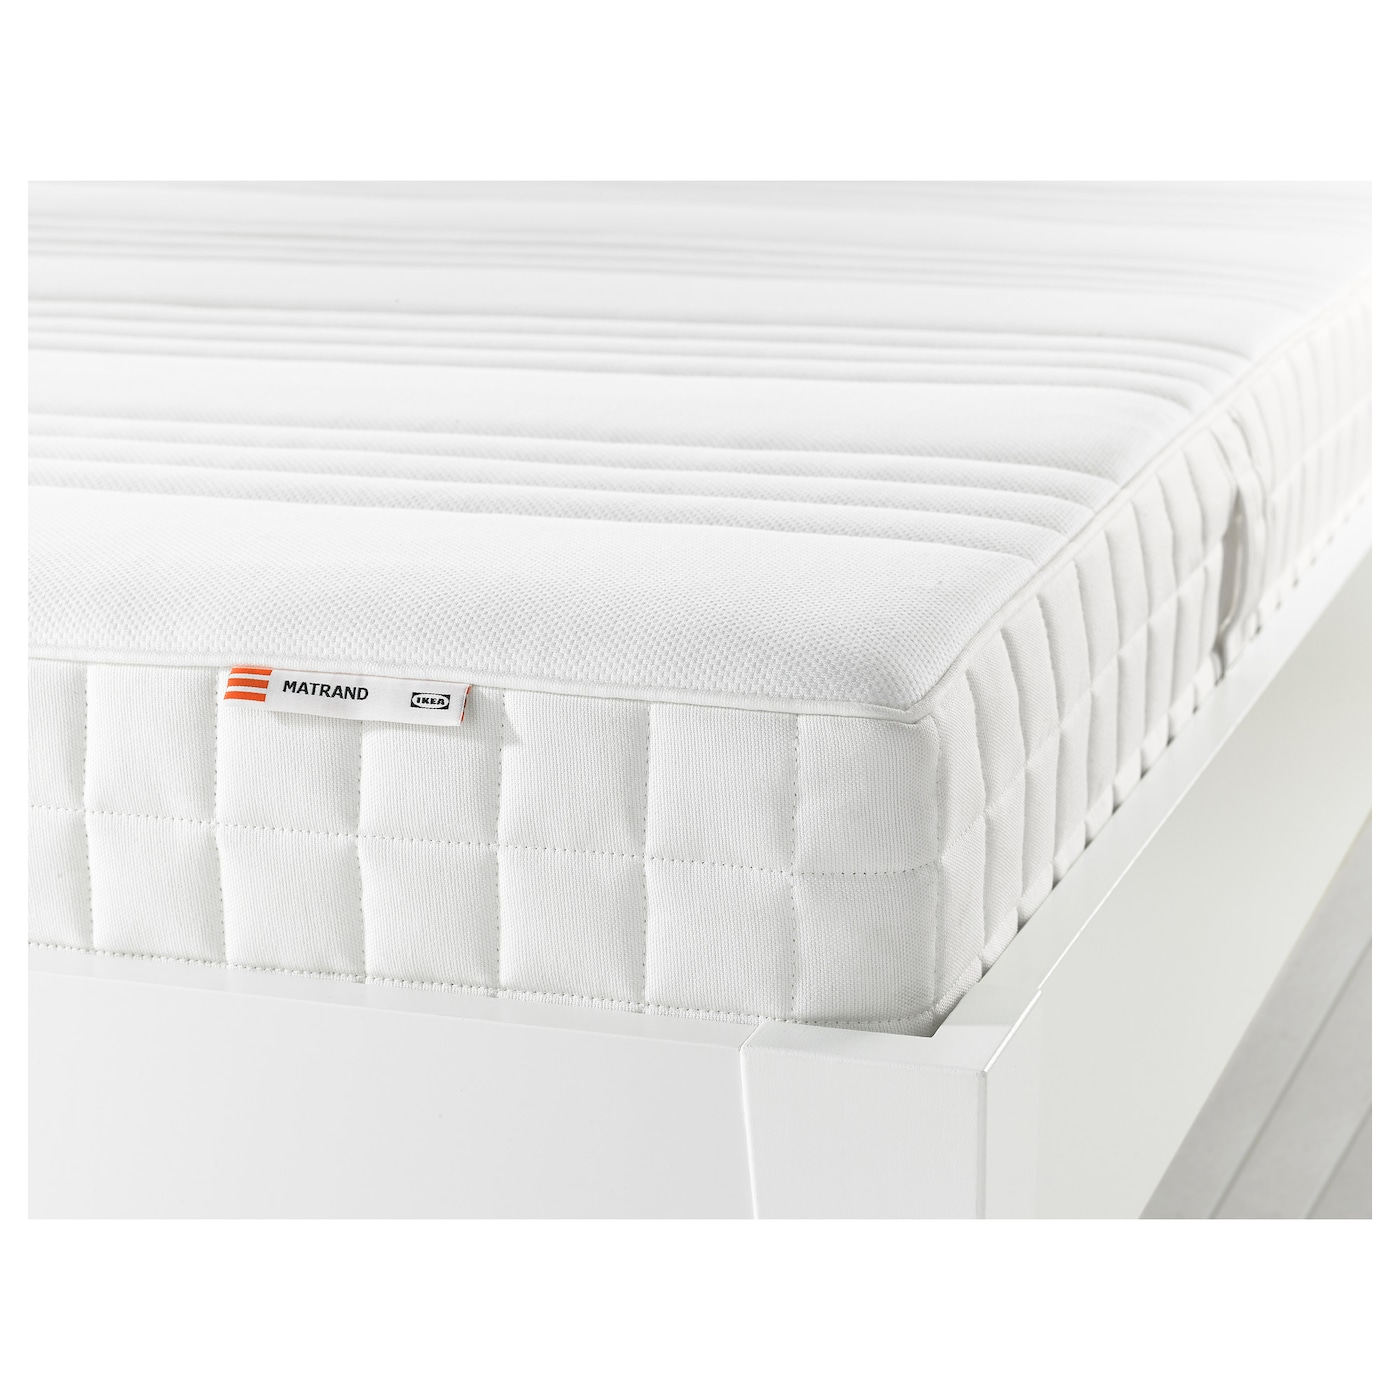 Materassi In Memory Ikea.Matrand Memory Foam Mattress Firm White